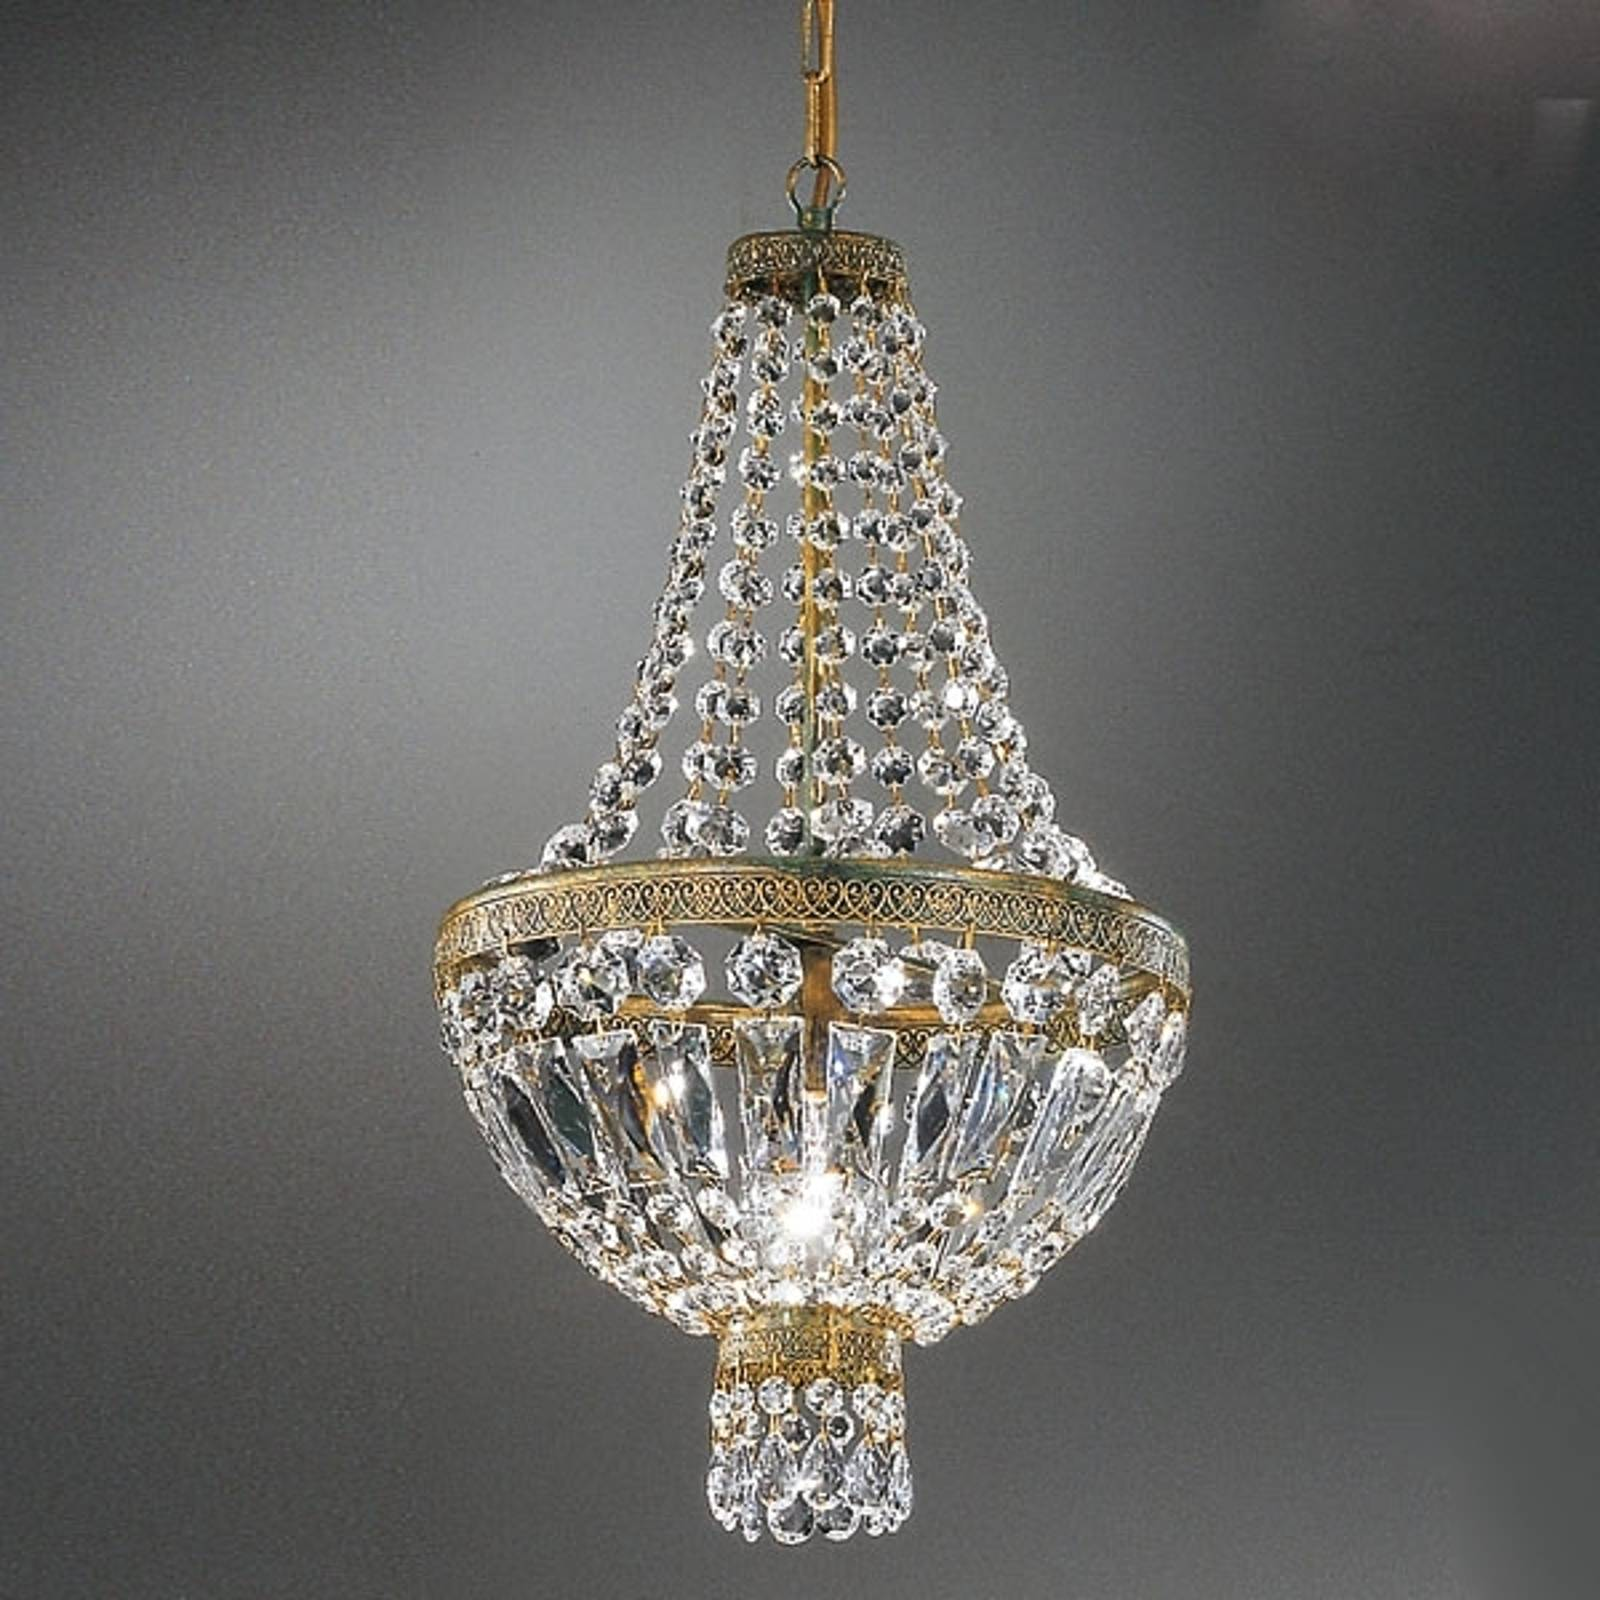 Crystal hanging light CUPOLA from Kögl